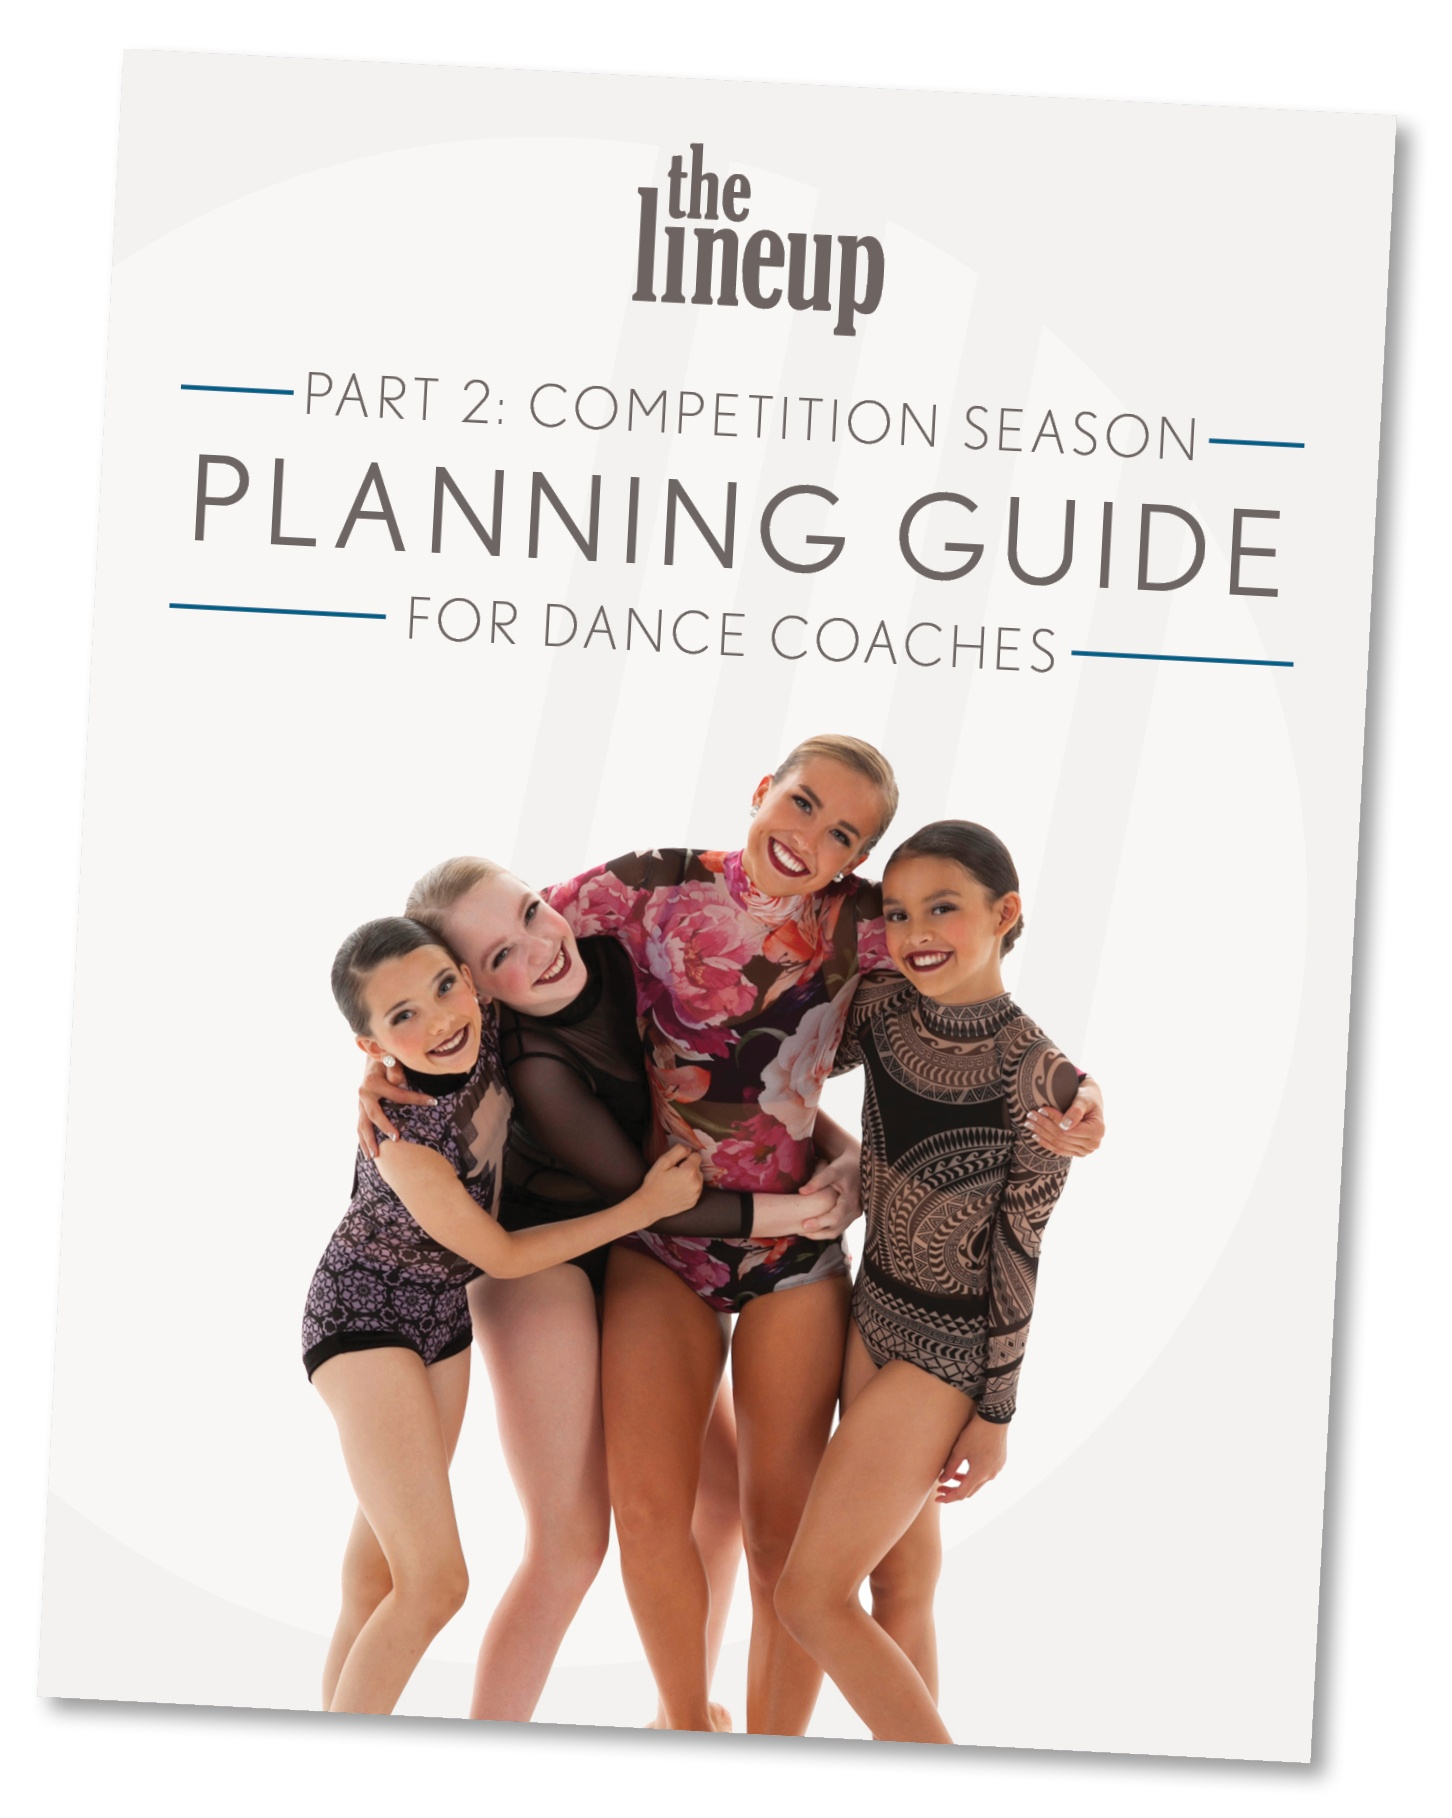 Competition Season Planning Guide Cover2.jpg